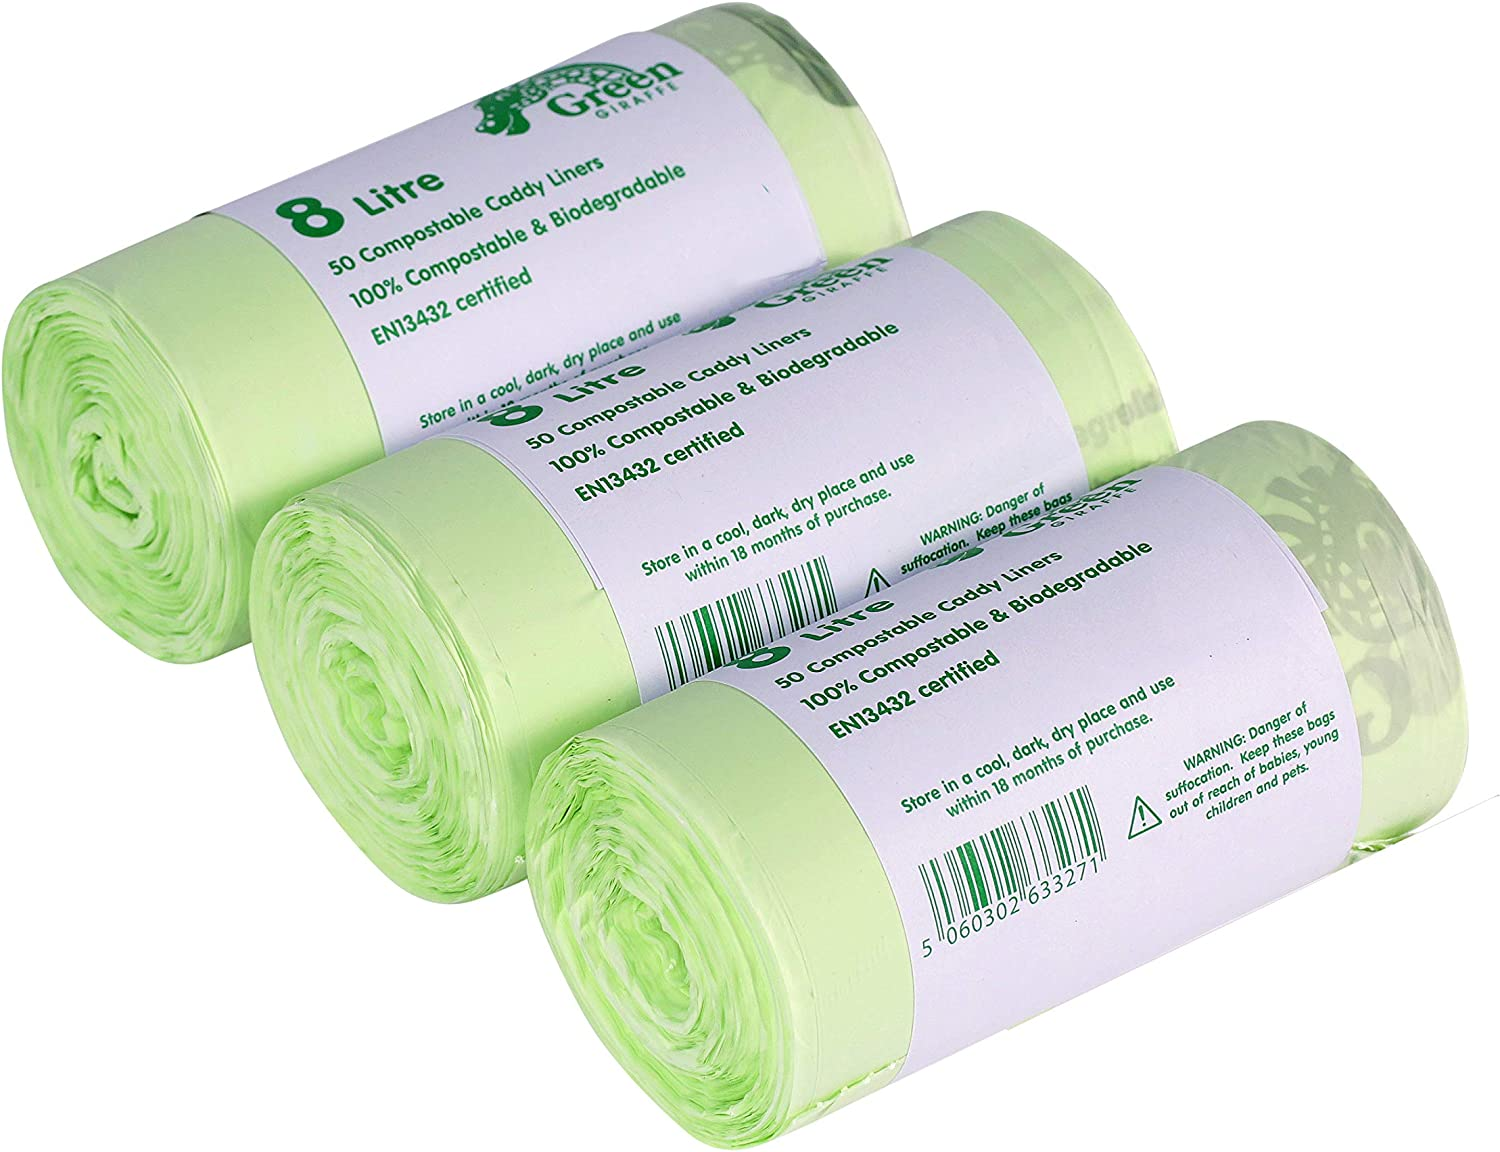 150x 8L Compostable Caddy Liners - 7 Litre / 8 Litre Degradable ...